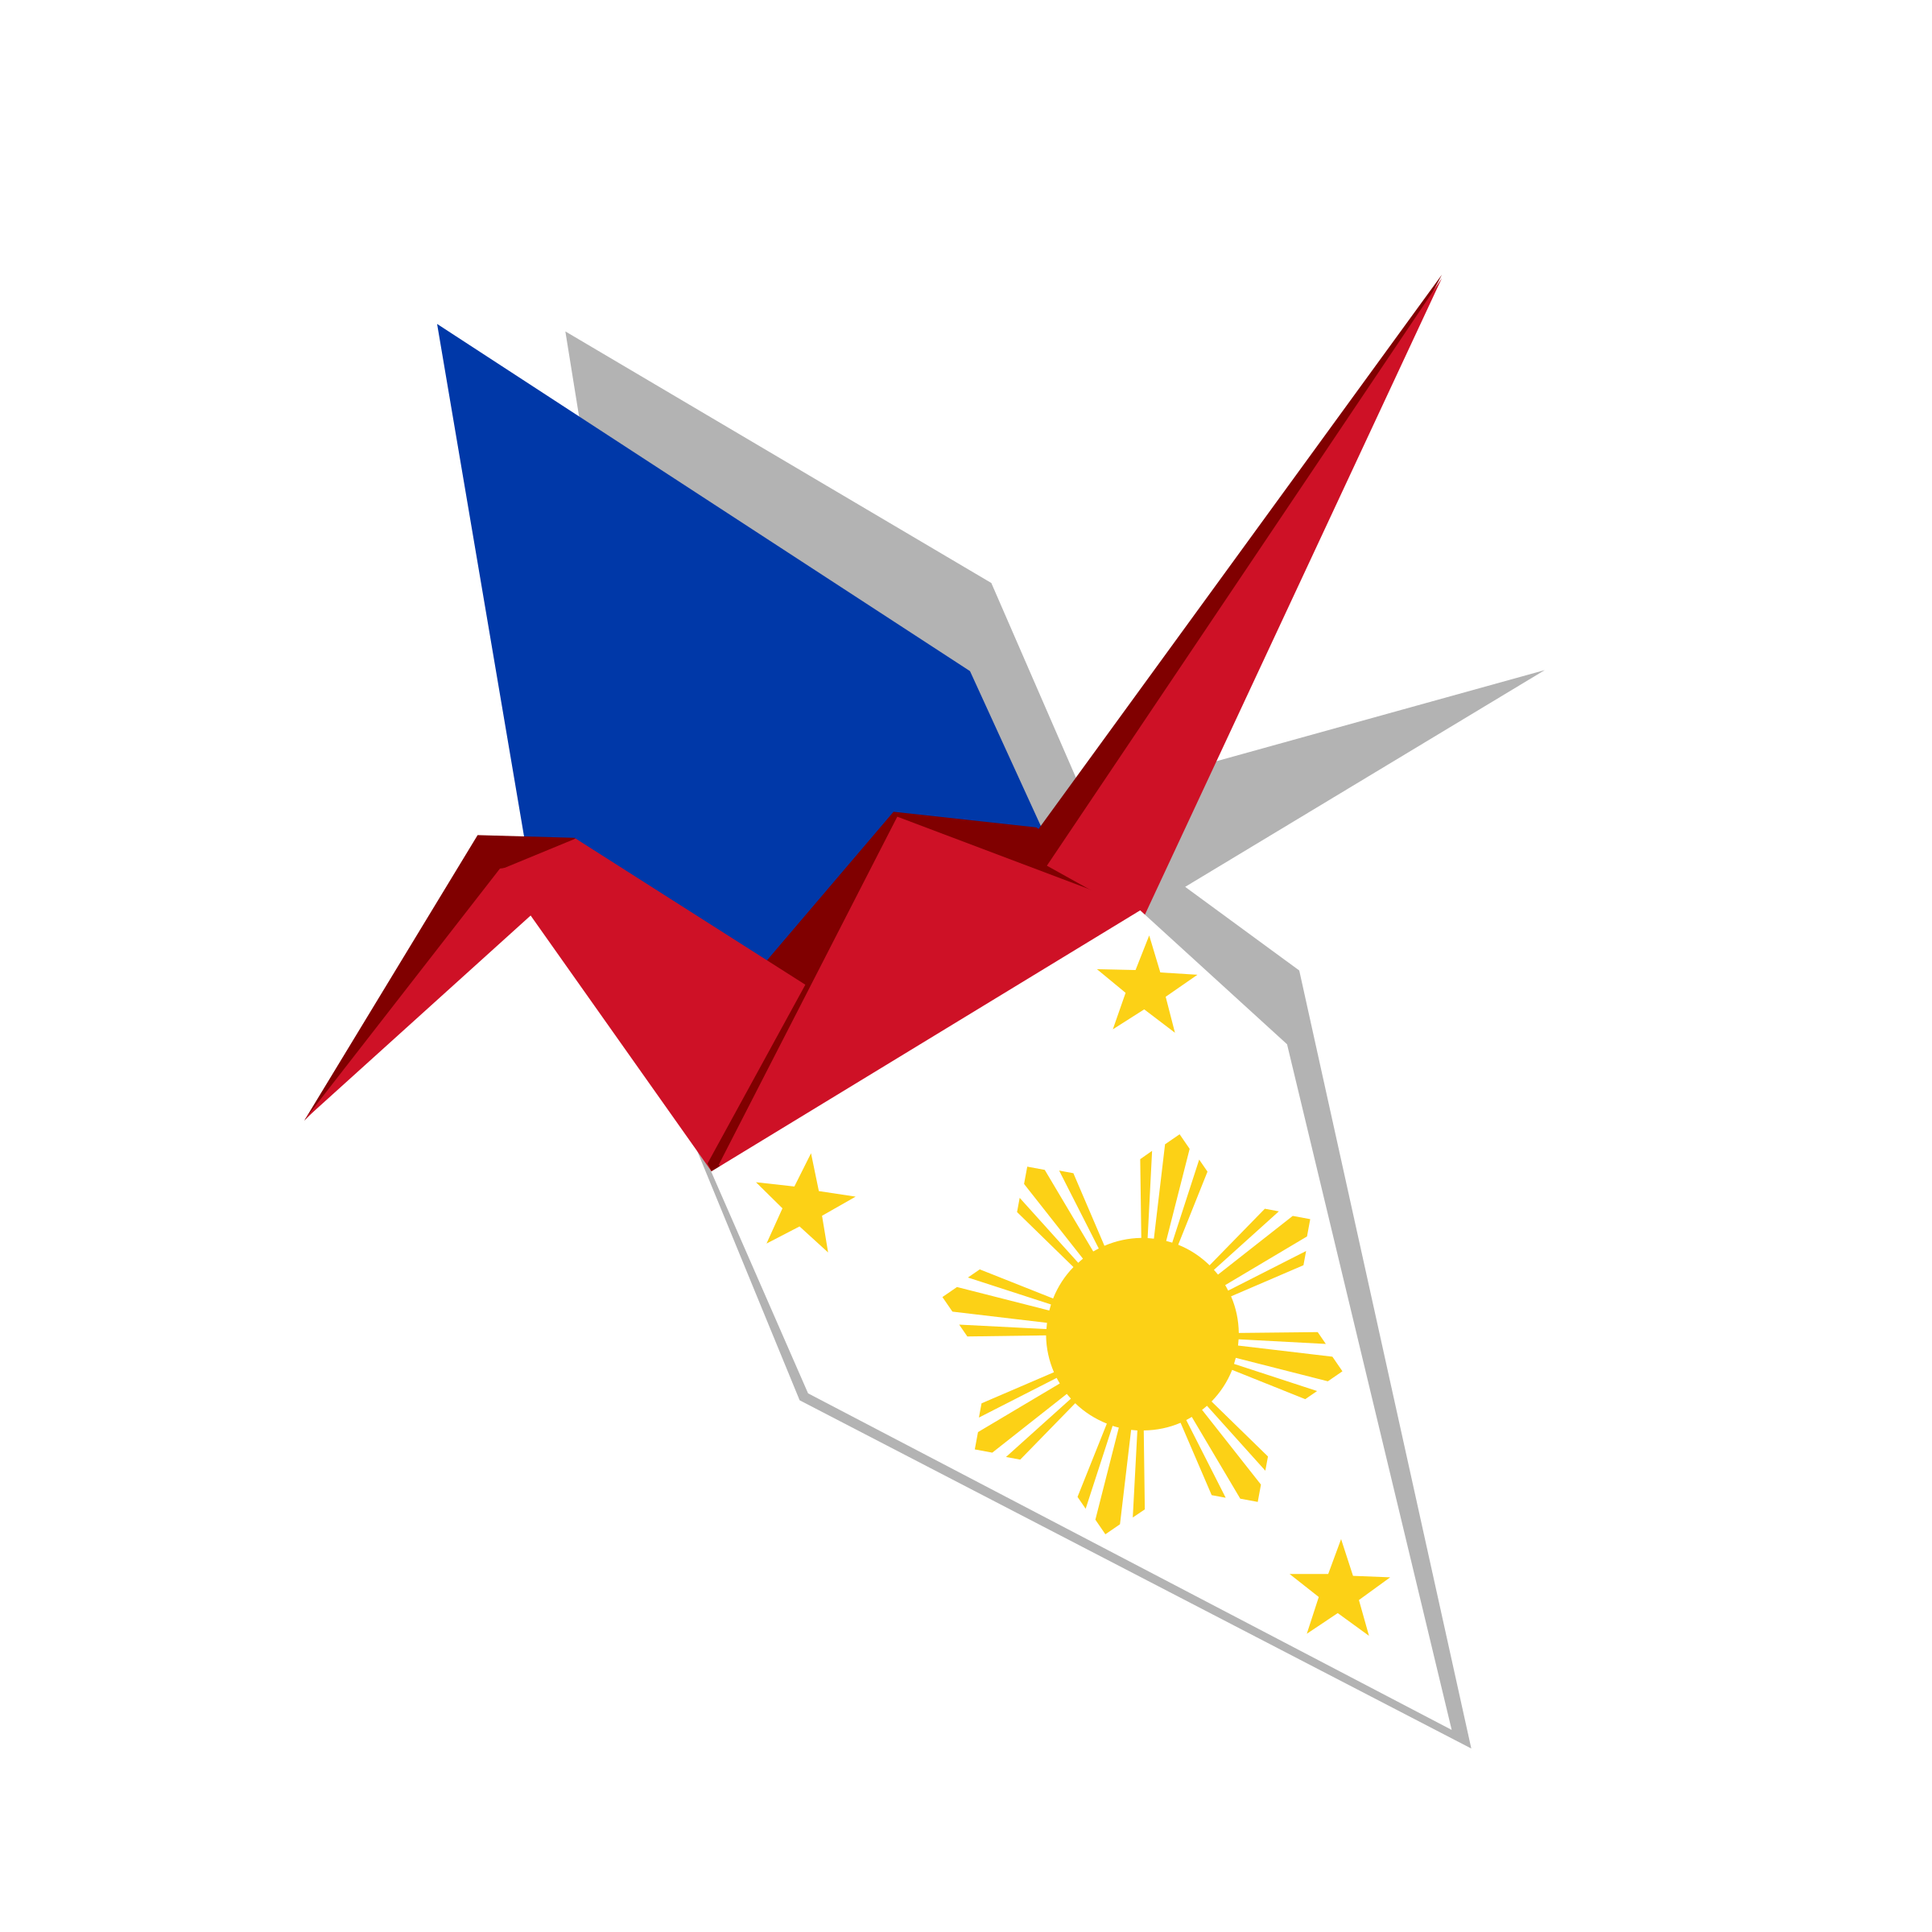 Origami Pilipinas by tuxwrench